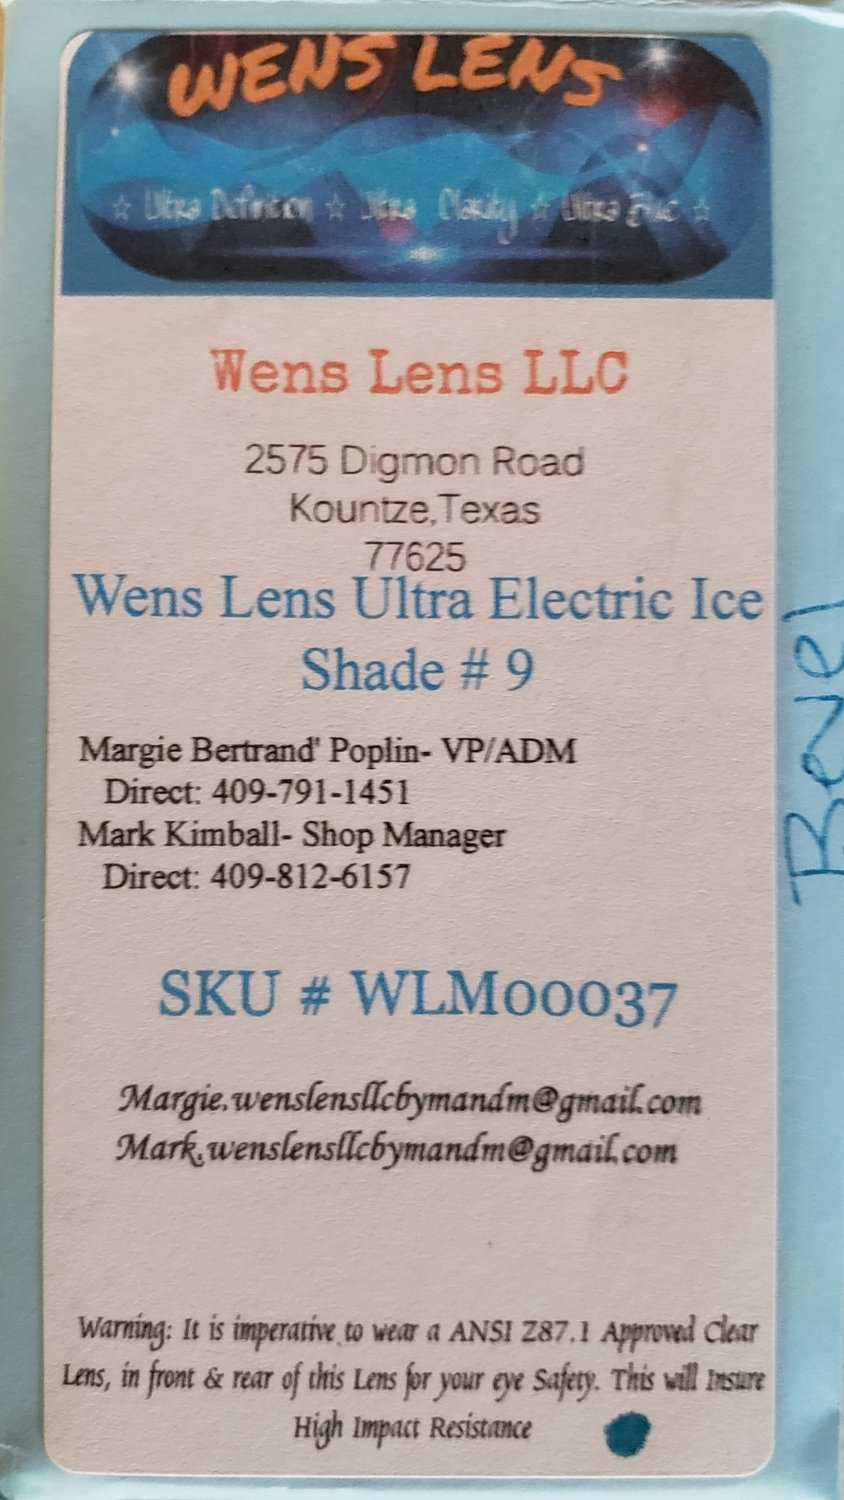 Wens Lens Ultra Electric Ice Shade #9